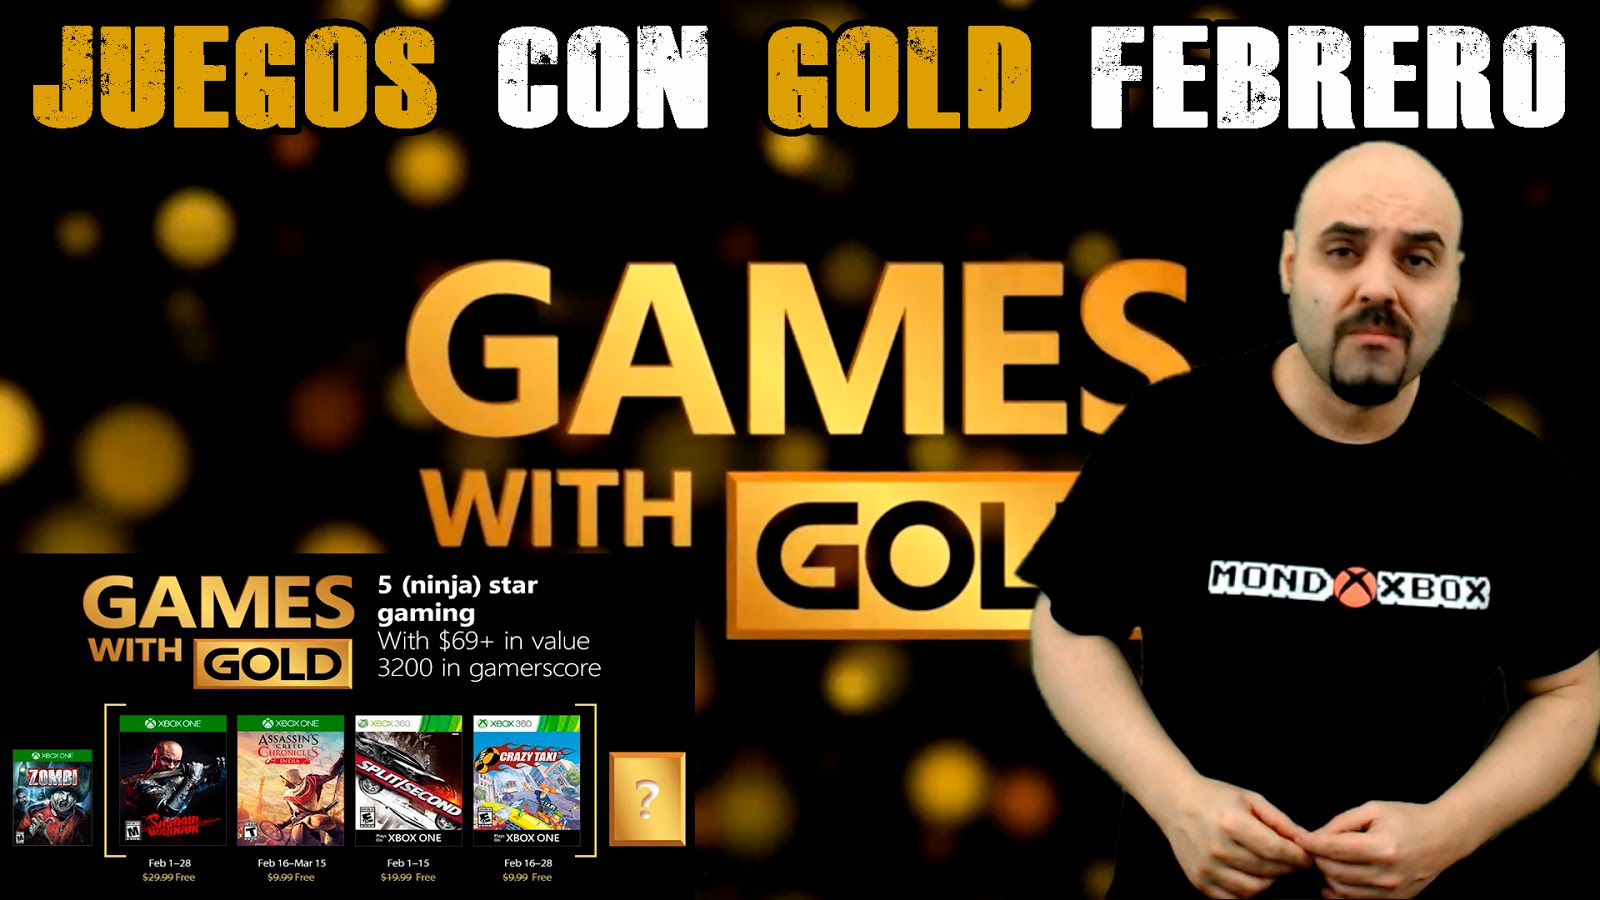 Mondoxbox Juegos Con Gold Febrero 2018 Games With Gold February